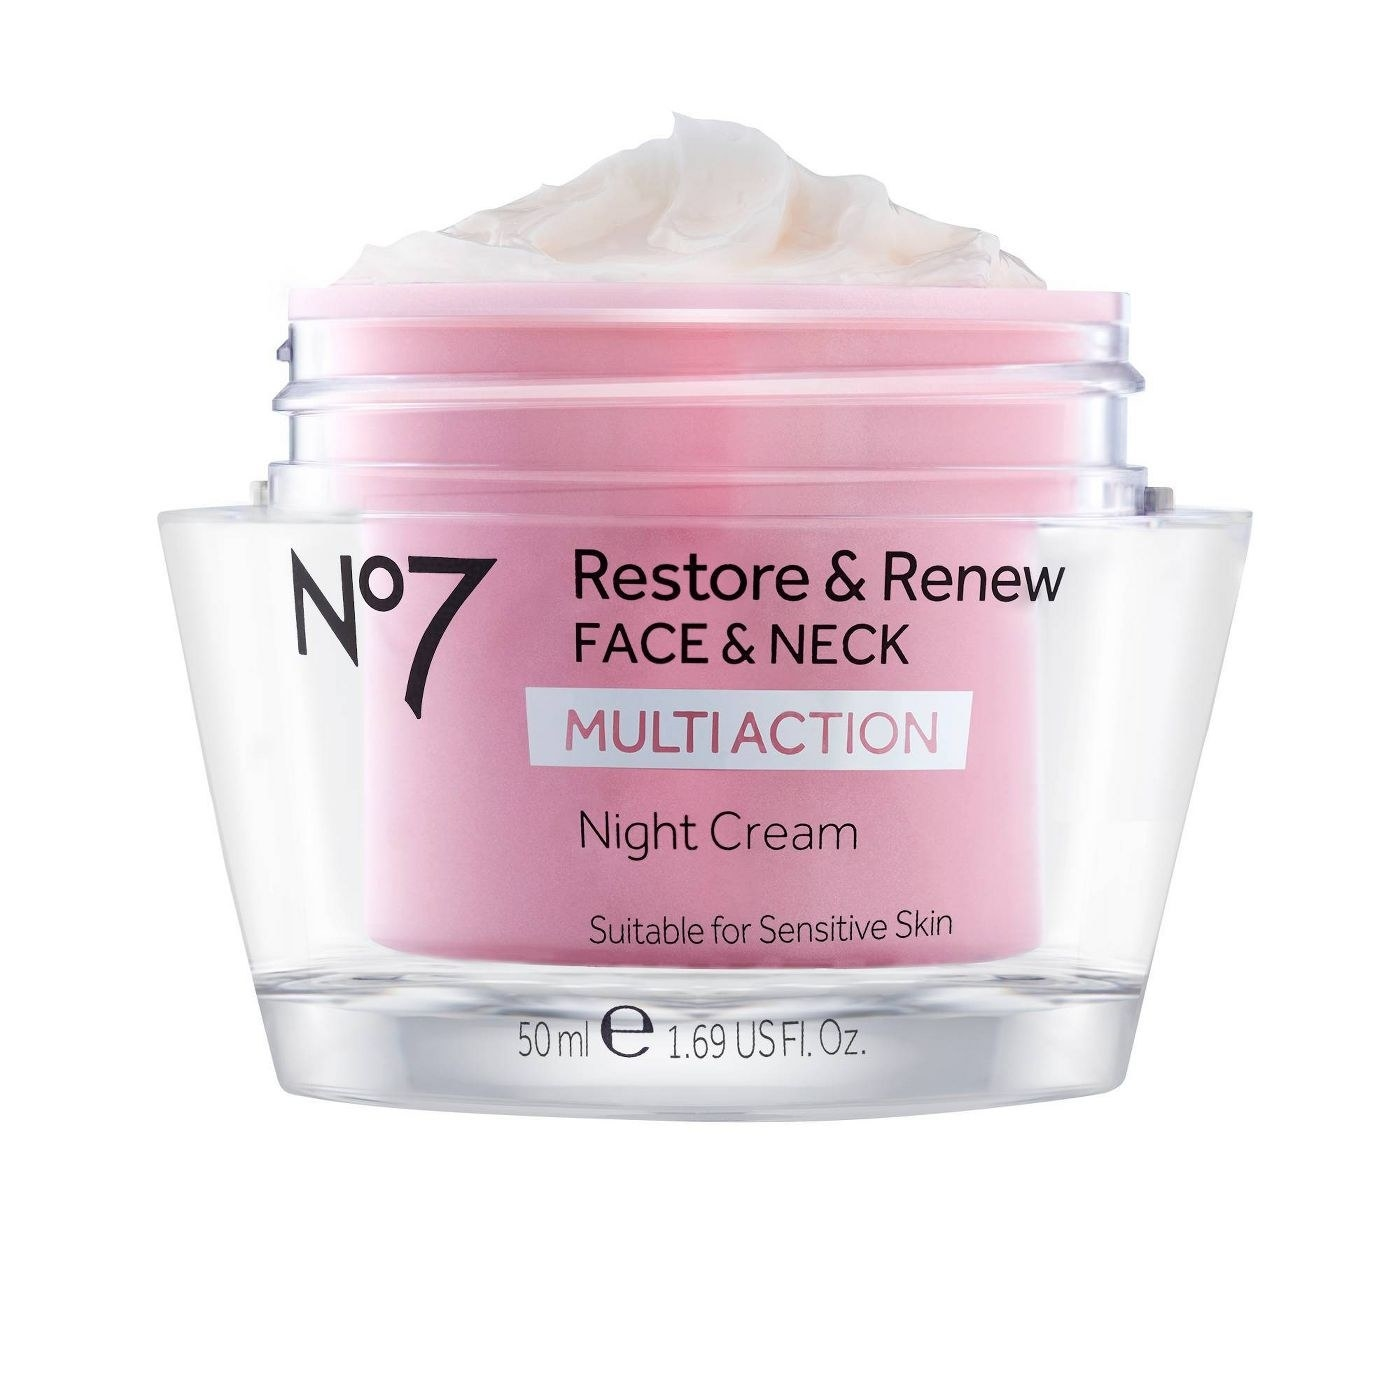 A pink jar with night face cream